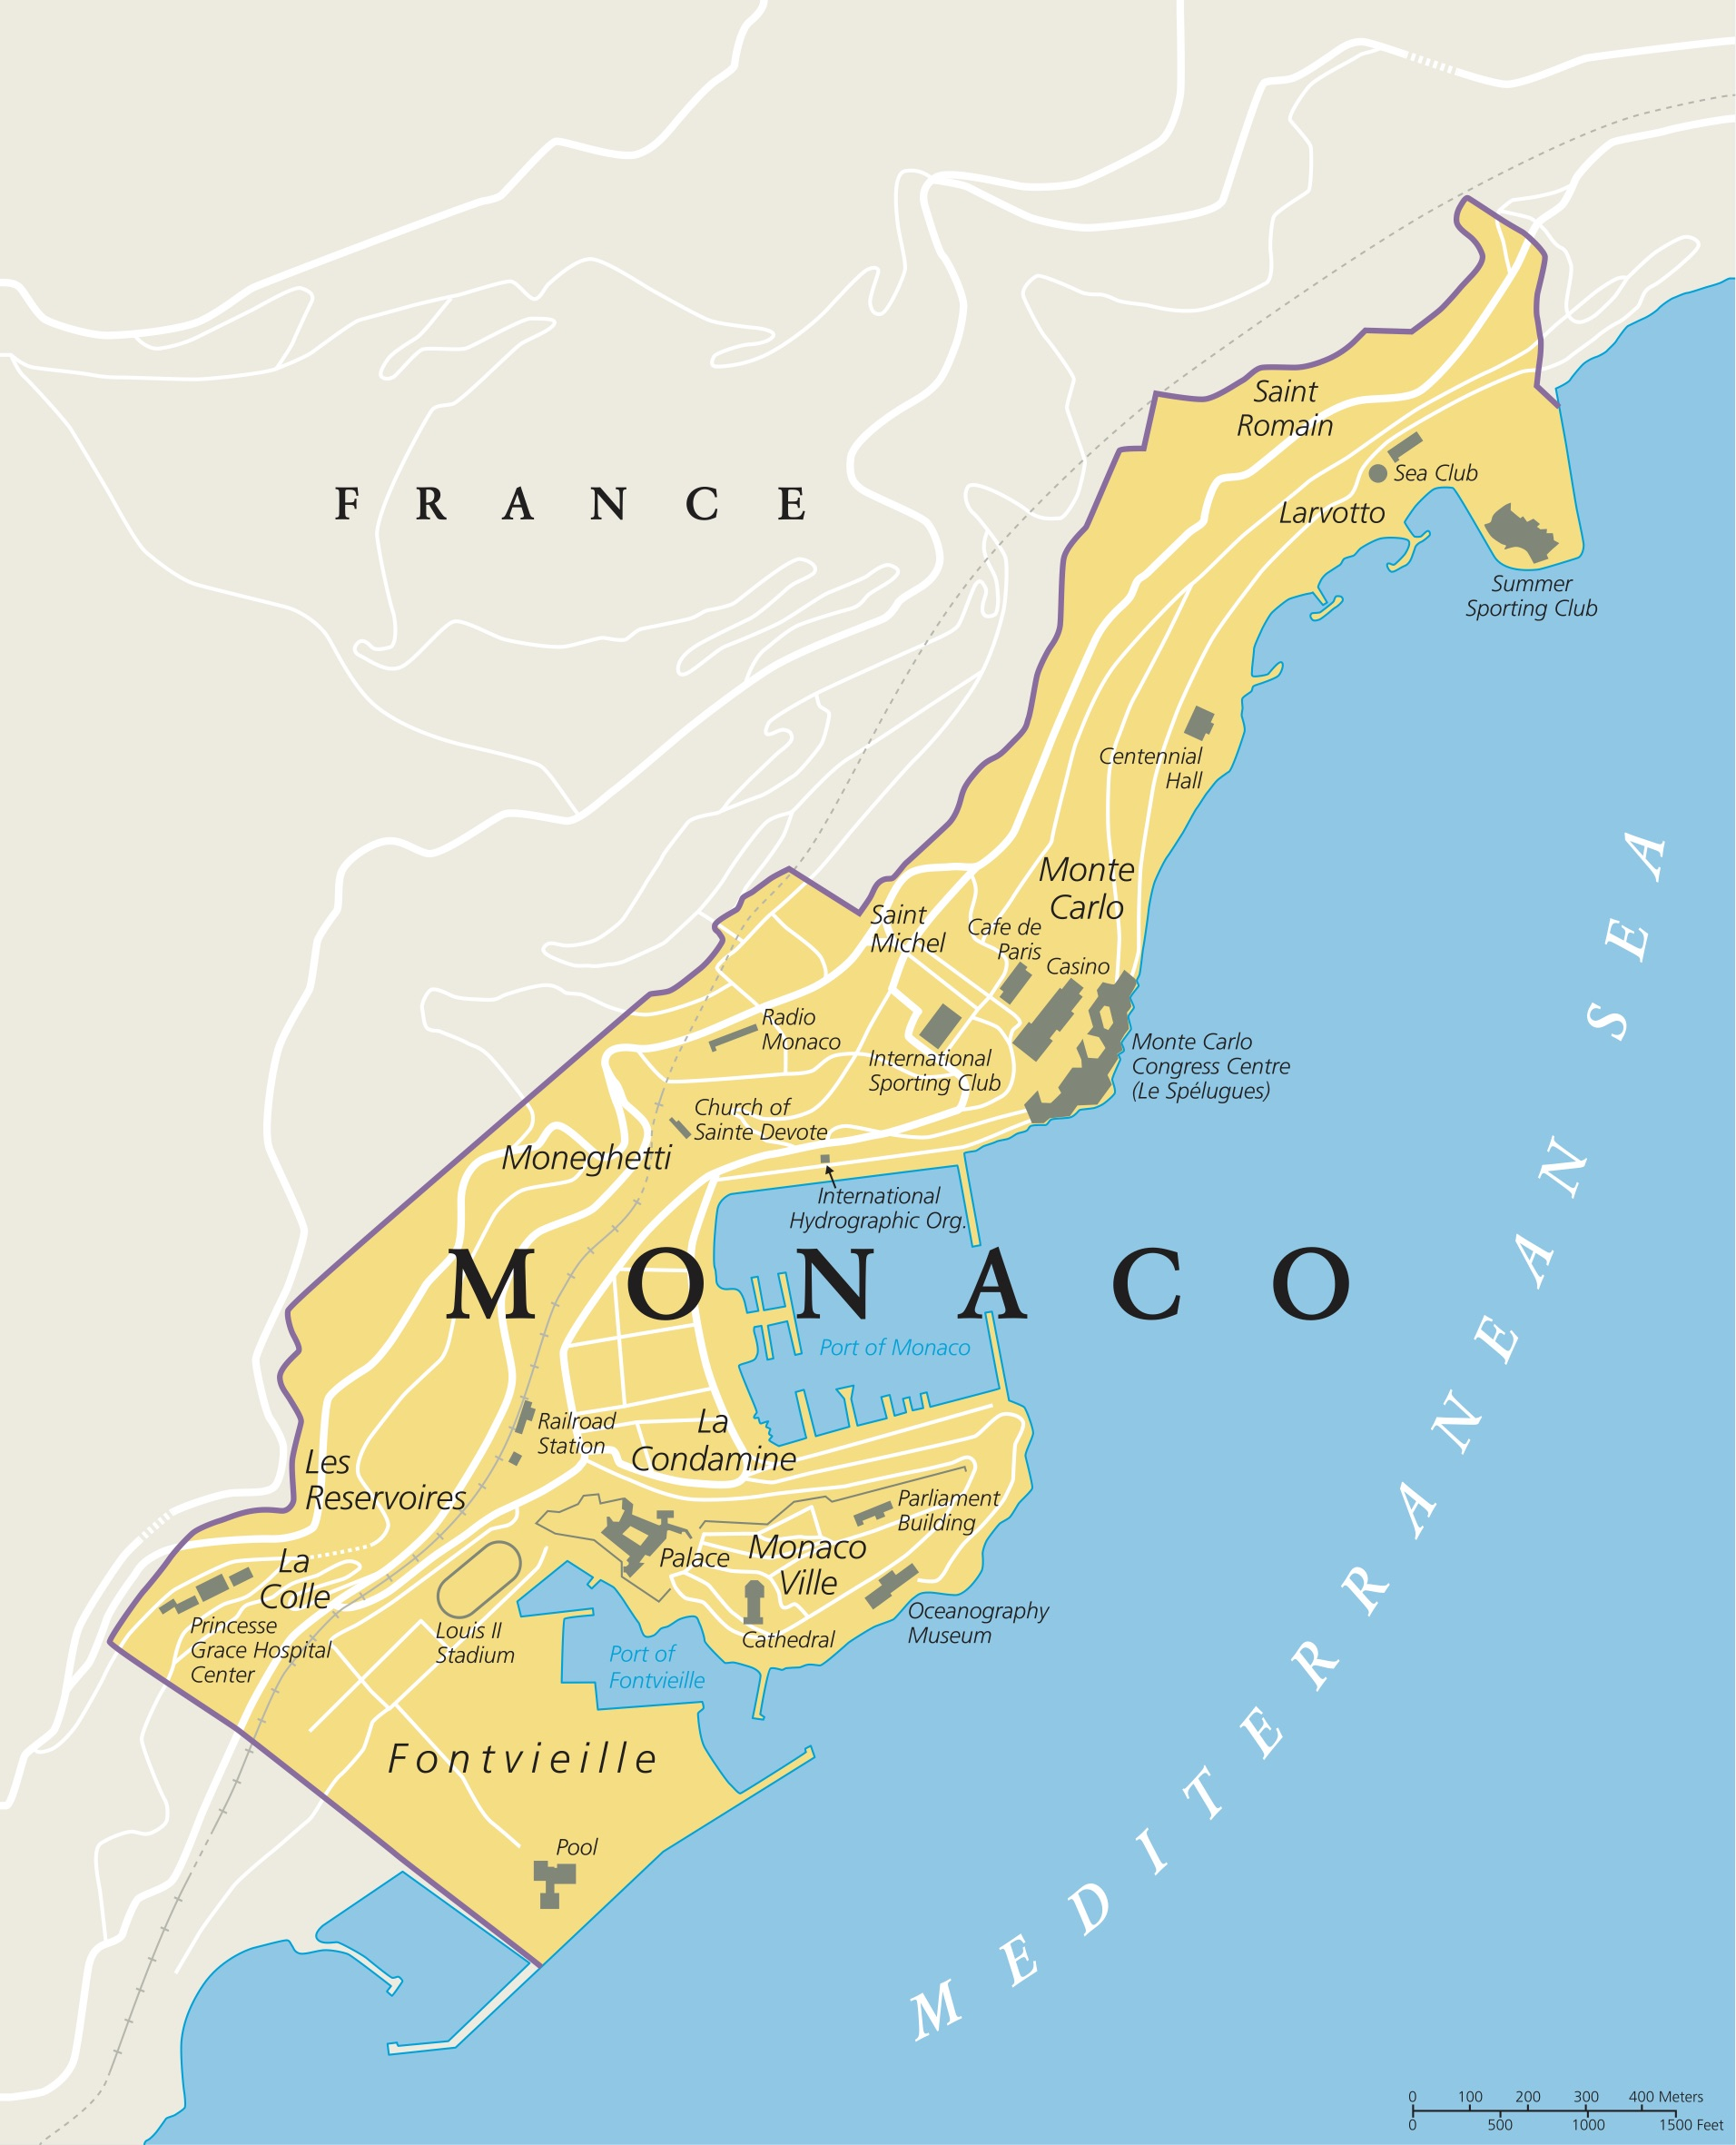 Monaco is known for attracting the world's wealthiest individuals who indulge in the small nation's lavish amenities and lack of wealth taxes. (Shutterstock/Peter Hermes Furian)